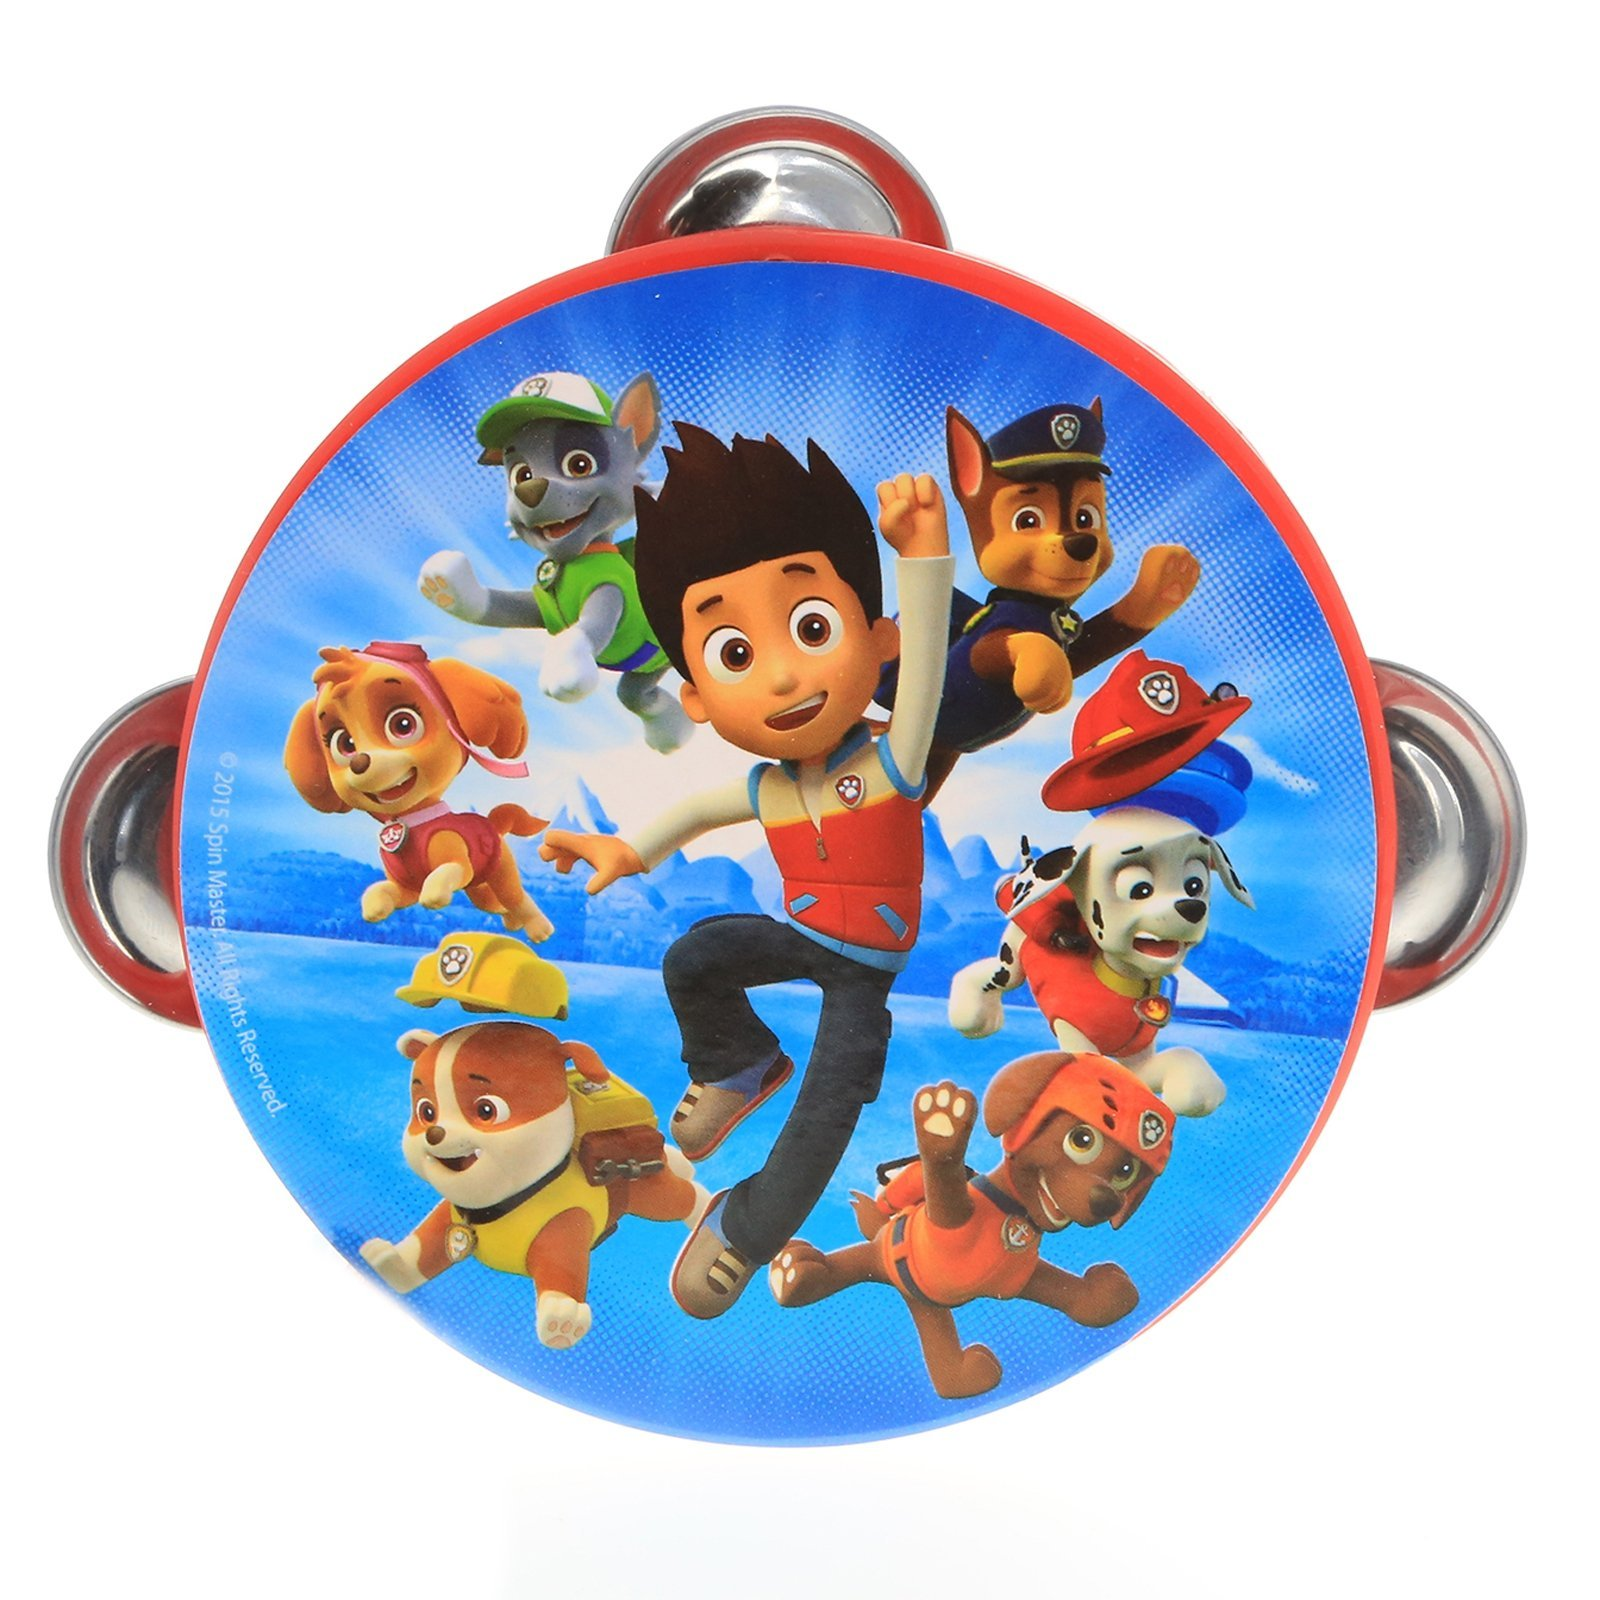 Nickelodeon Paw Patrol Kids Tambourine Educational Musical Instrument Toy Gift